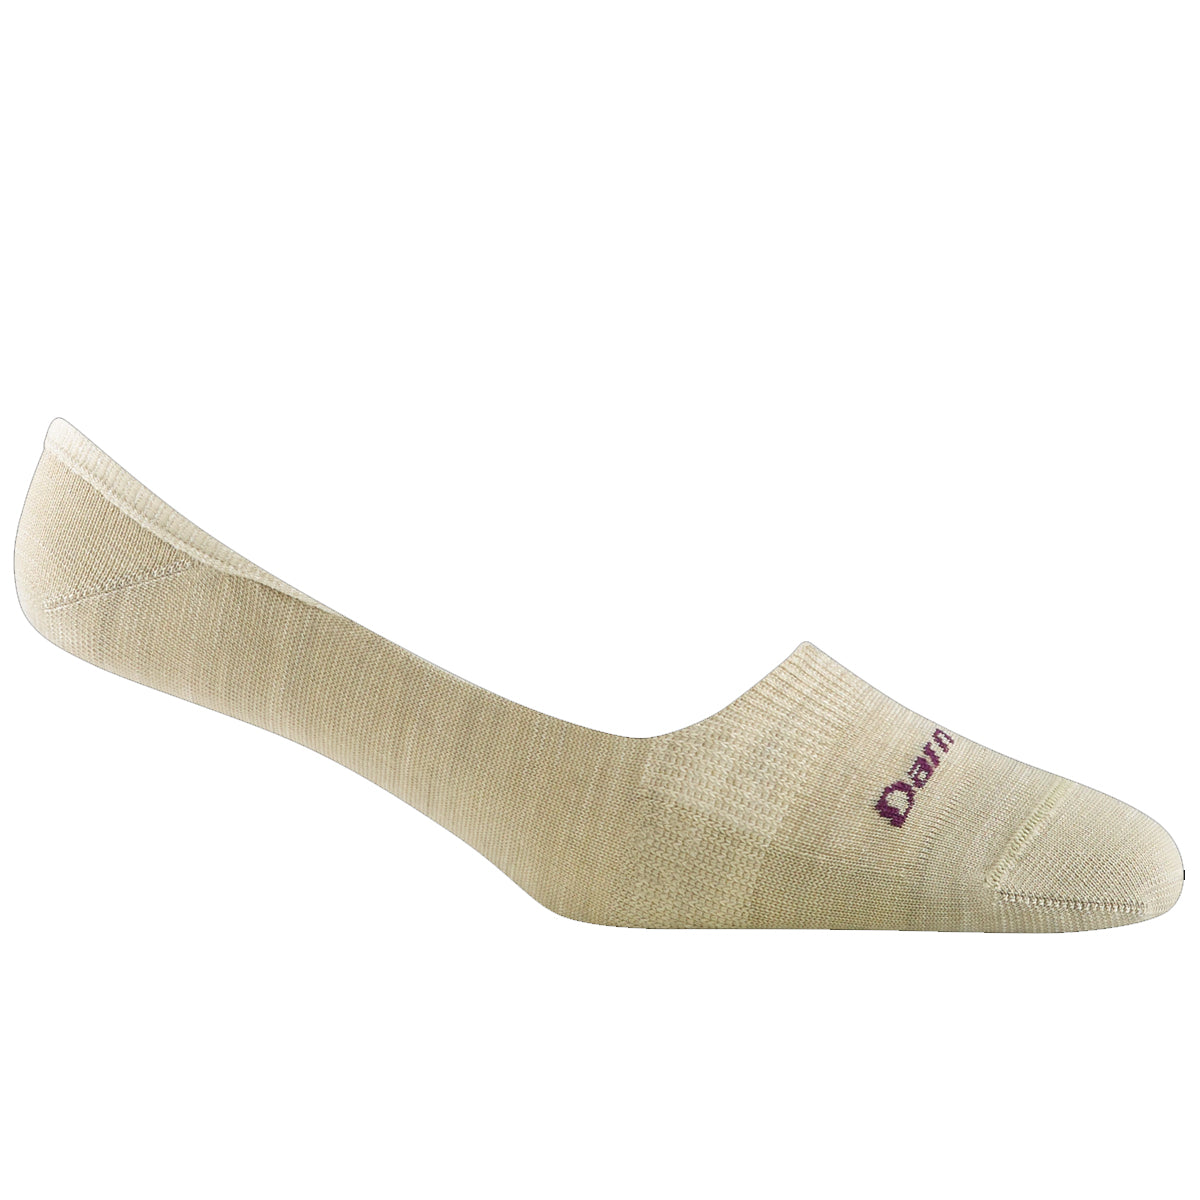 Darn Tough Women's Top Down Solid No Show Invisible Lightweight Lifestyle Socks - Oatmeal